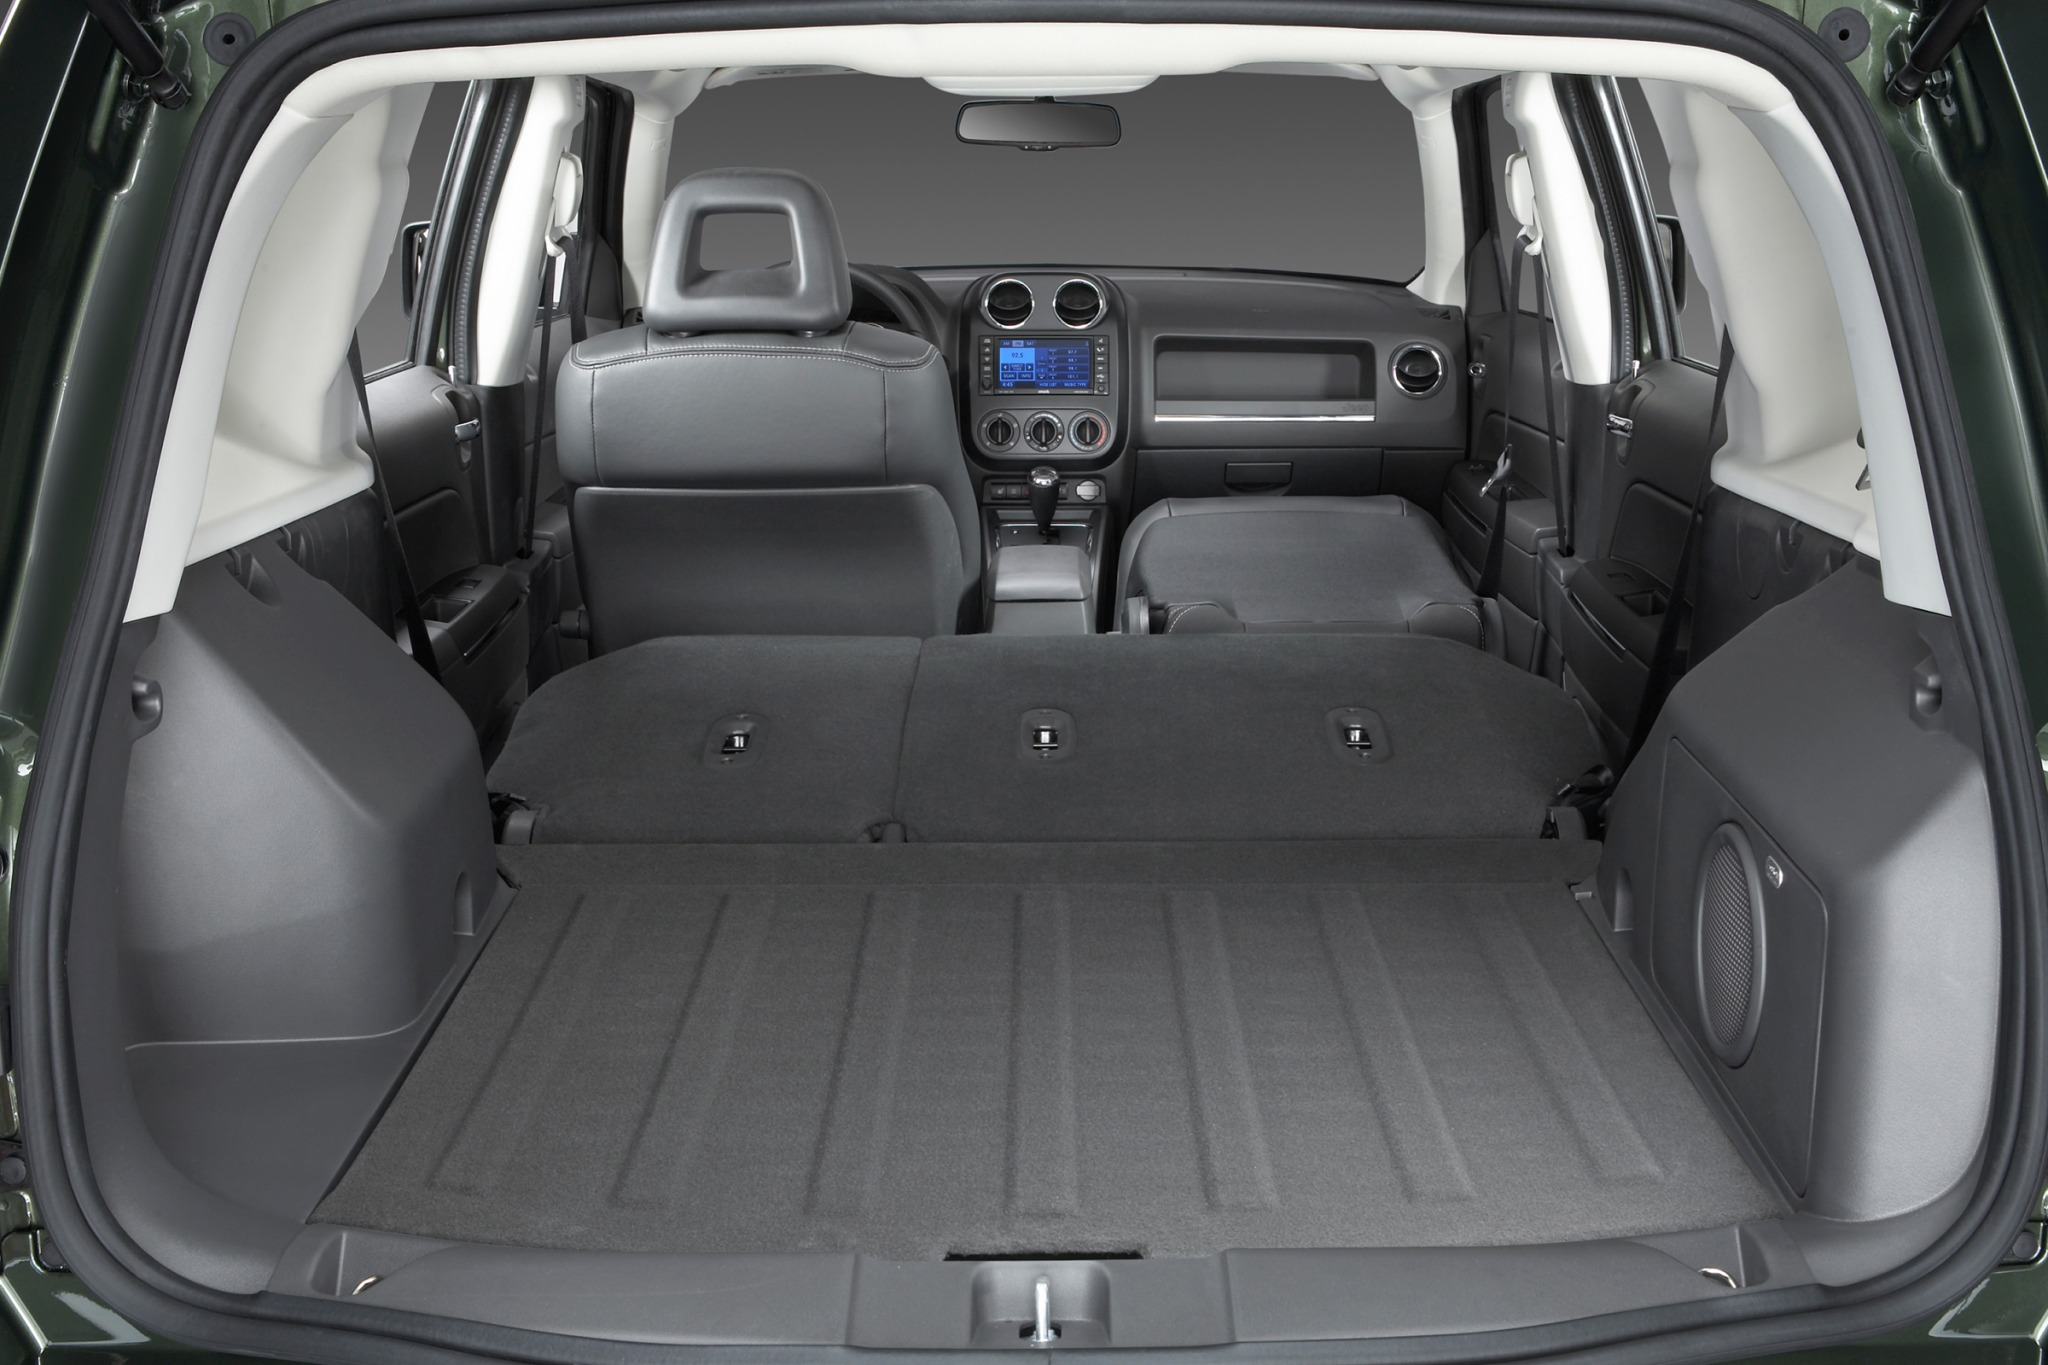 2010 Jeep Patriot Limited interior #7